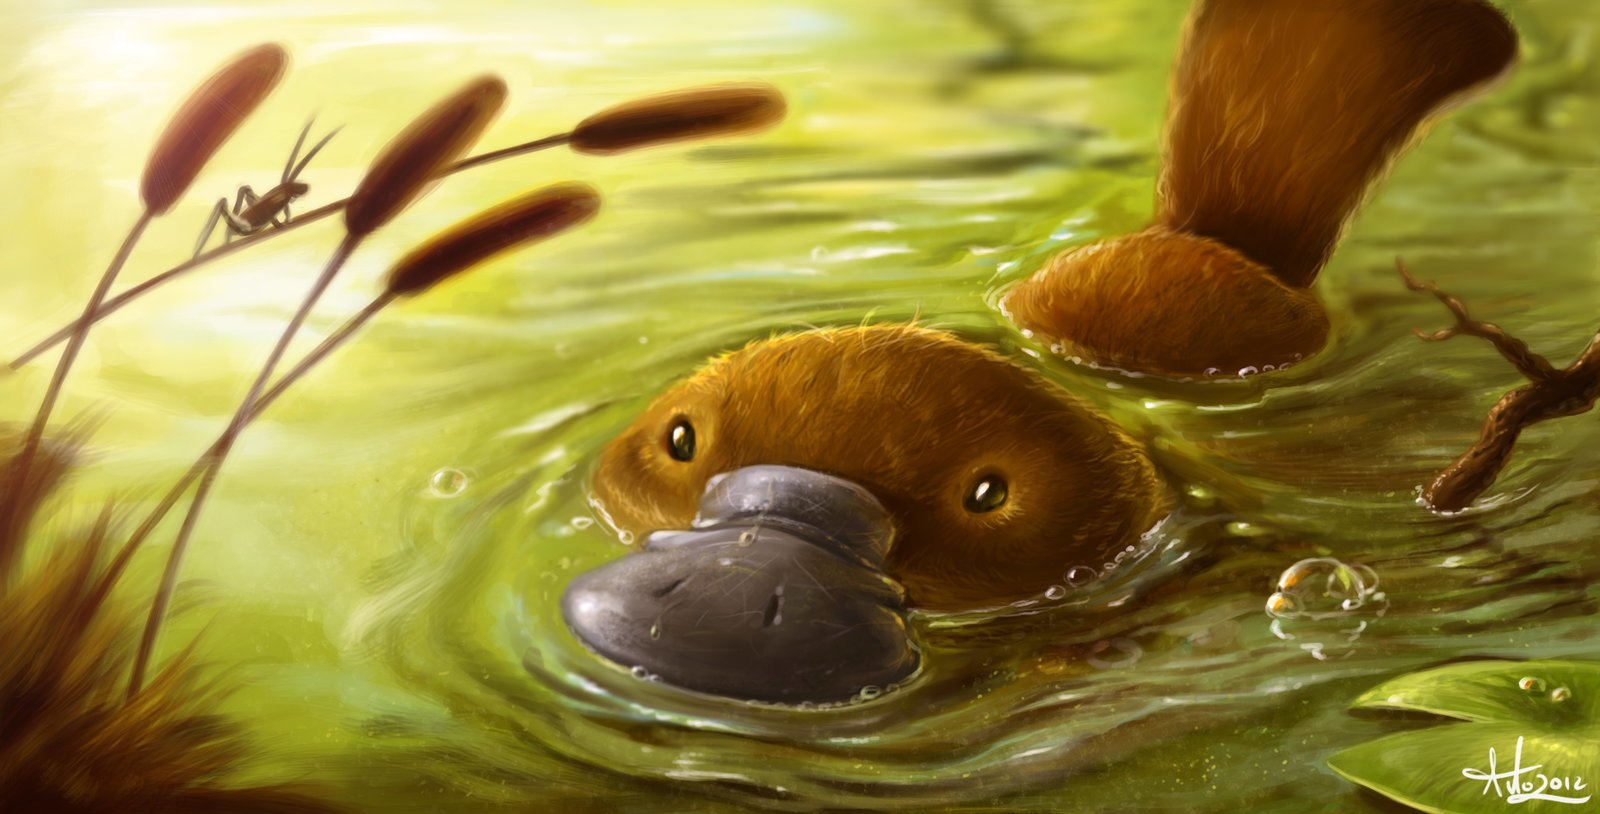 Platypus full hd wallpaper and background image 2560x1600 id wallpaper id 441639 voltagebd Images